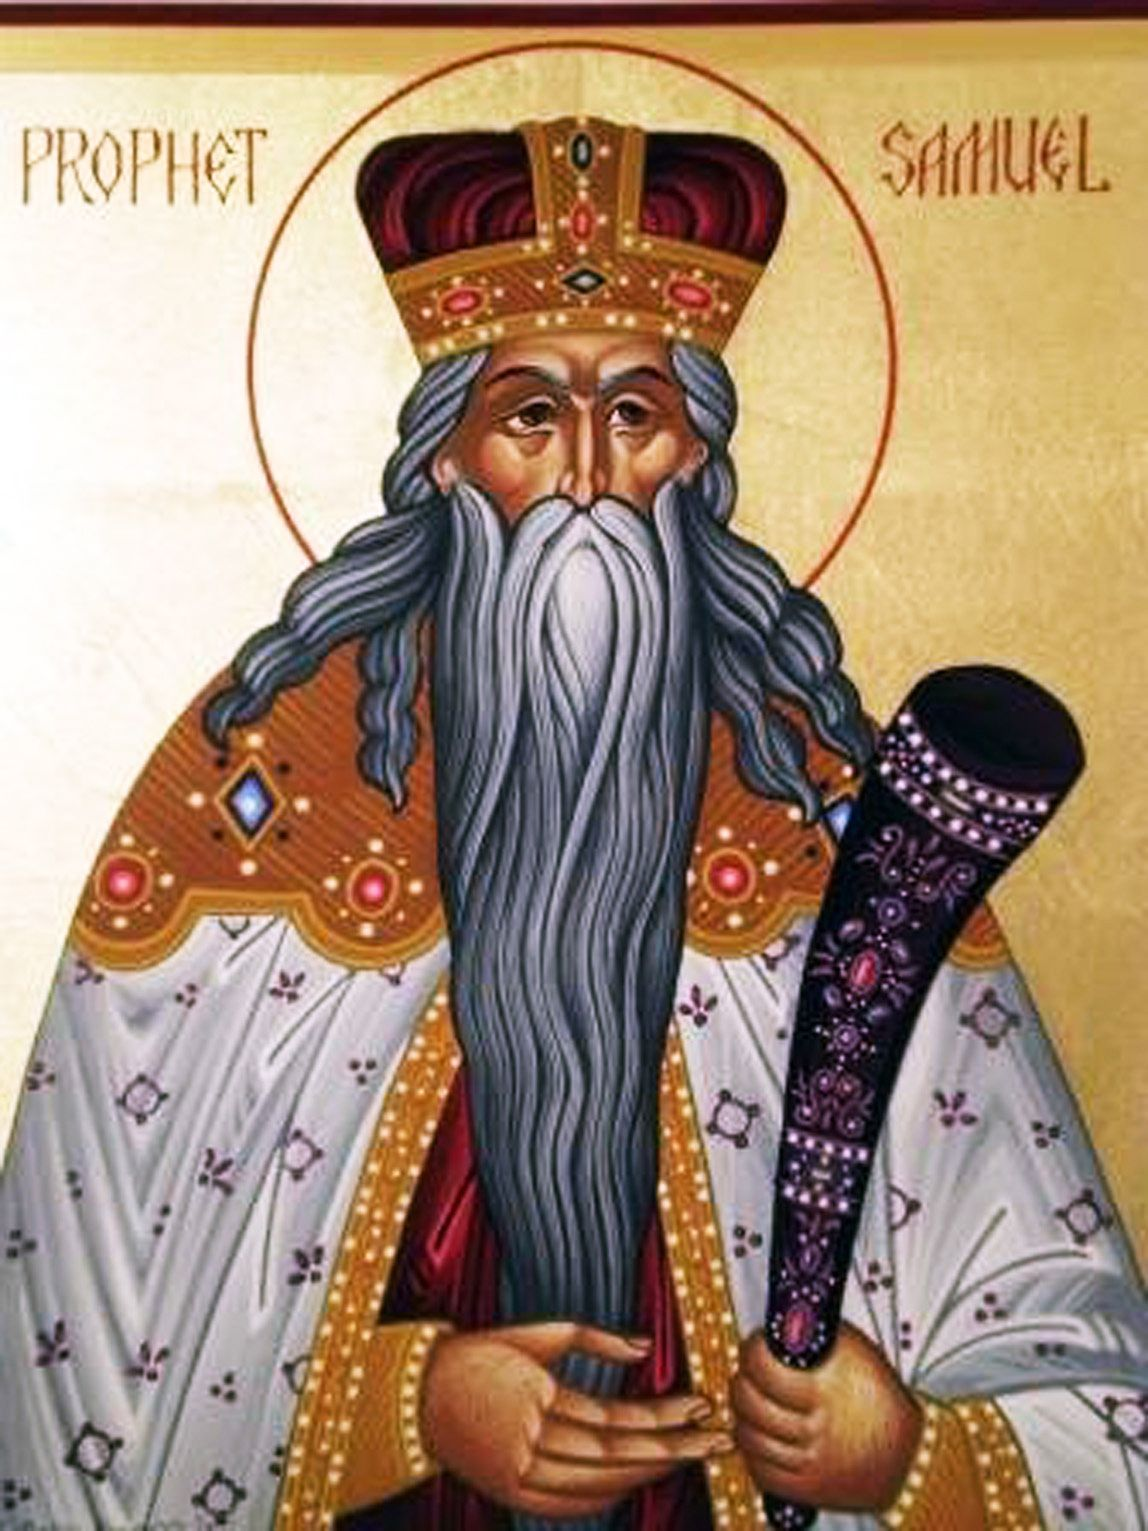 about Prophet Samuel, 6th century BC - http://www.holytrinityorthodox.com/iconoftheday/los/August/20-01.htm